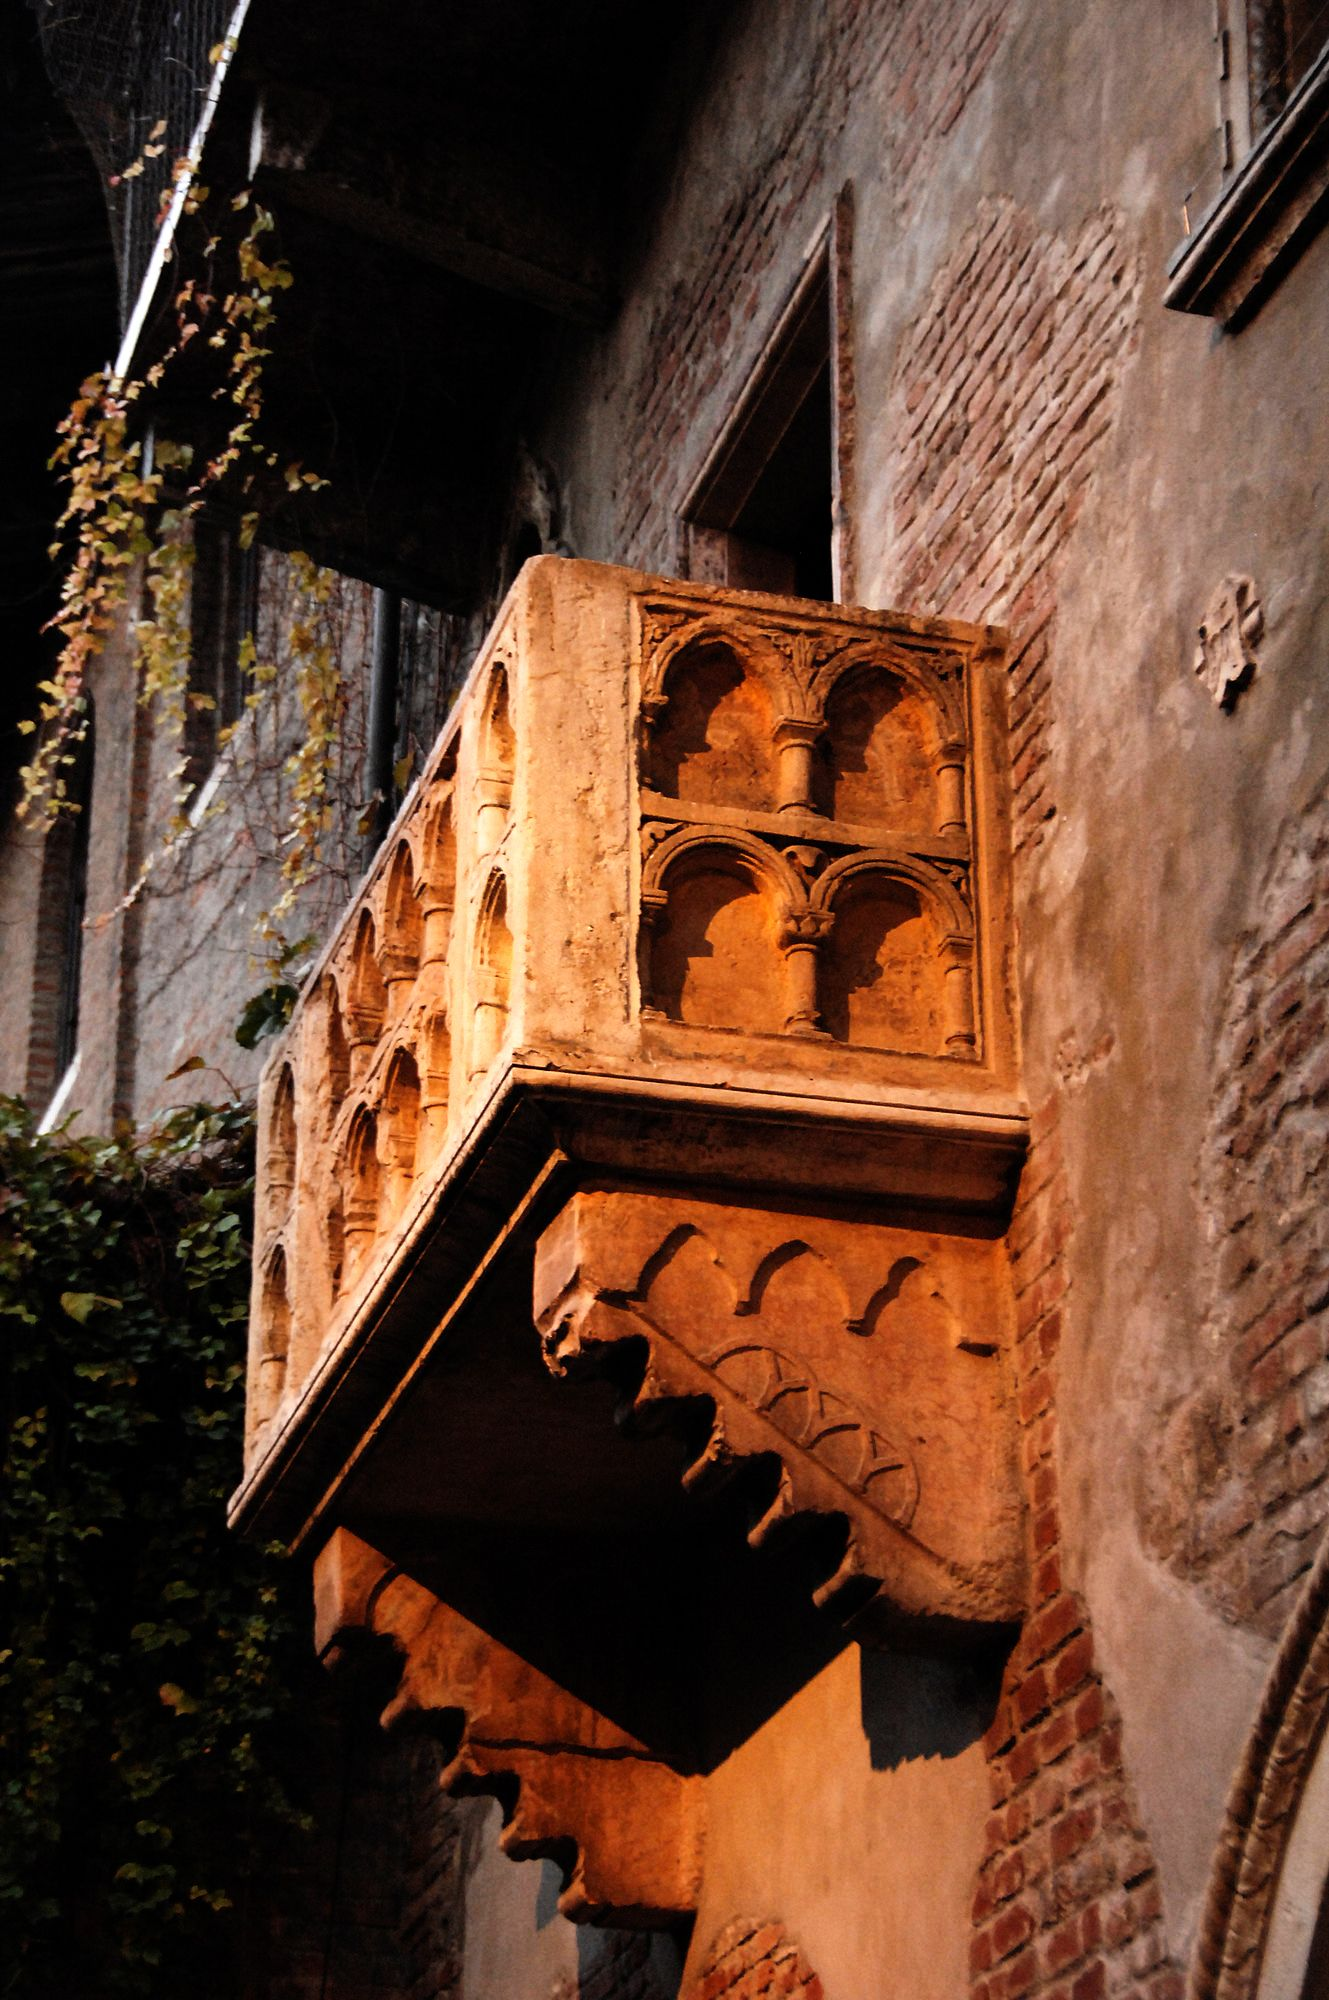 Verona. Could that be fair Juliet's balcony?